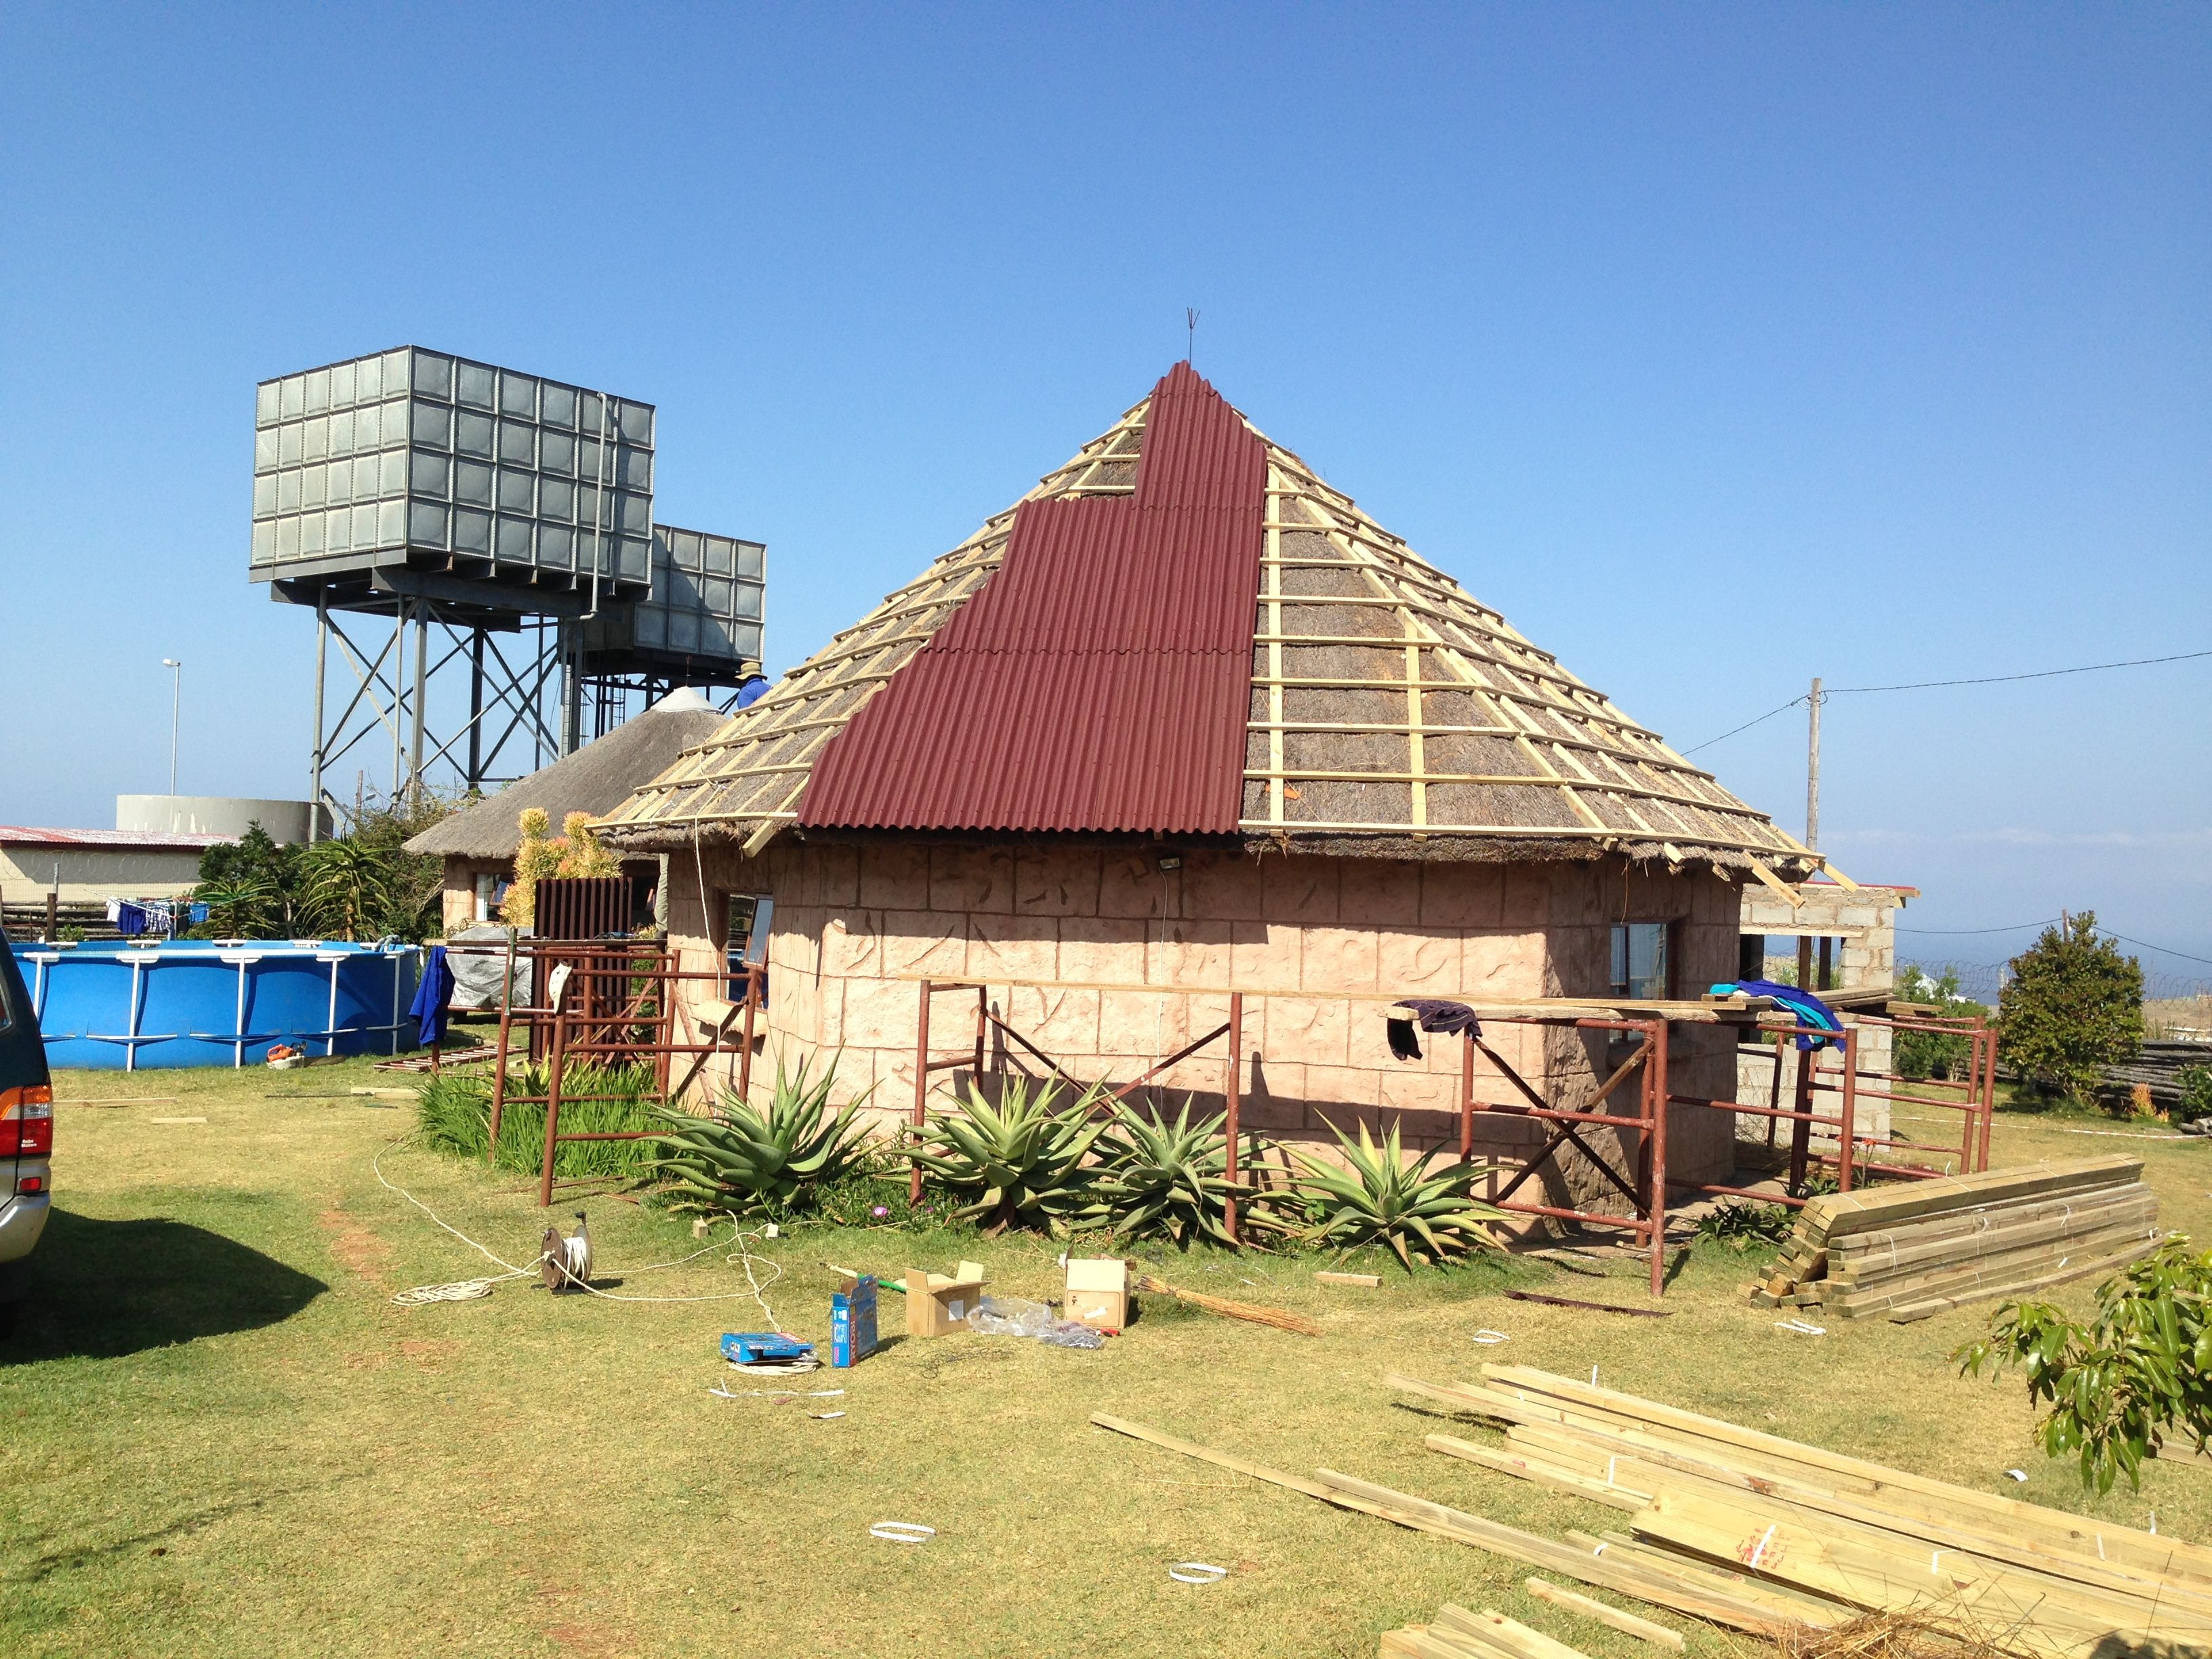 An Eastern Cape Hospital Thatched Roof Being Converted To Onduline Roofing With The Over Sheeting Method Building Plans House Timber House Roofing